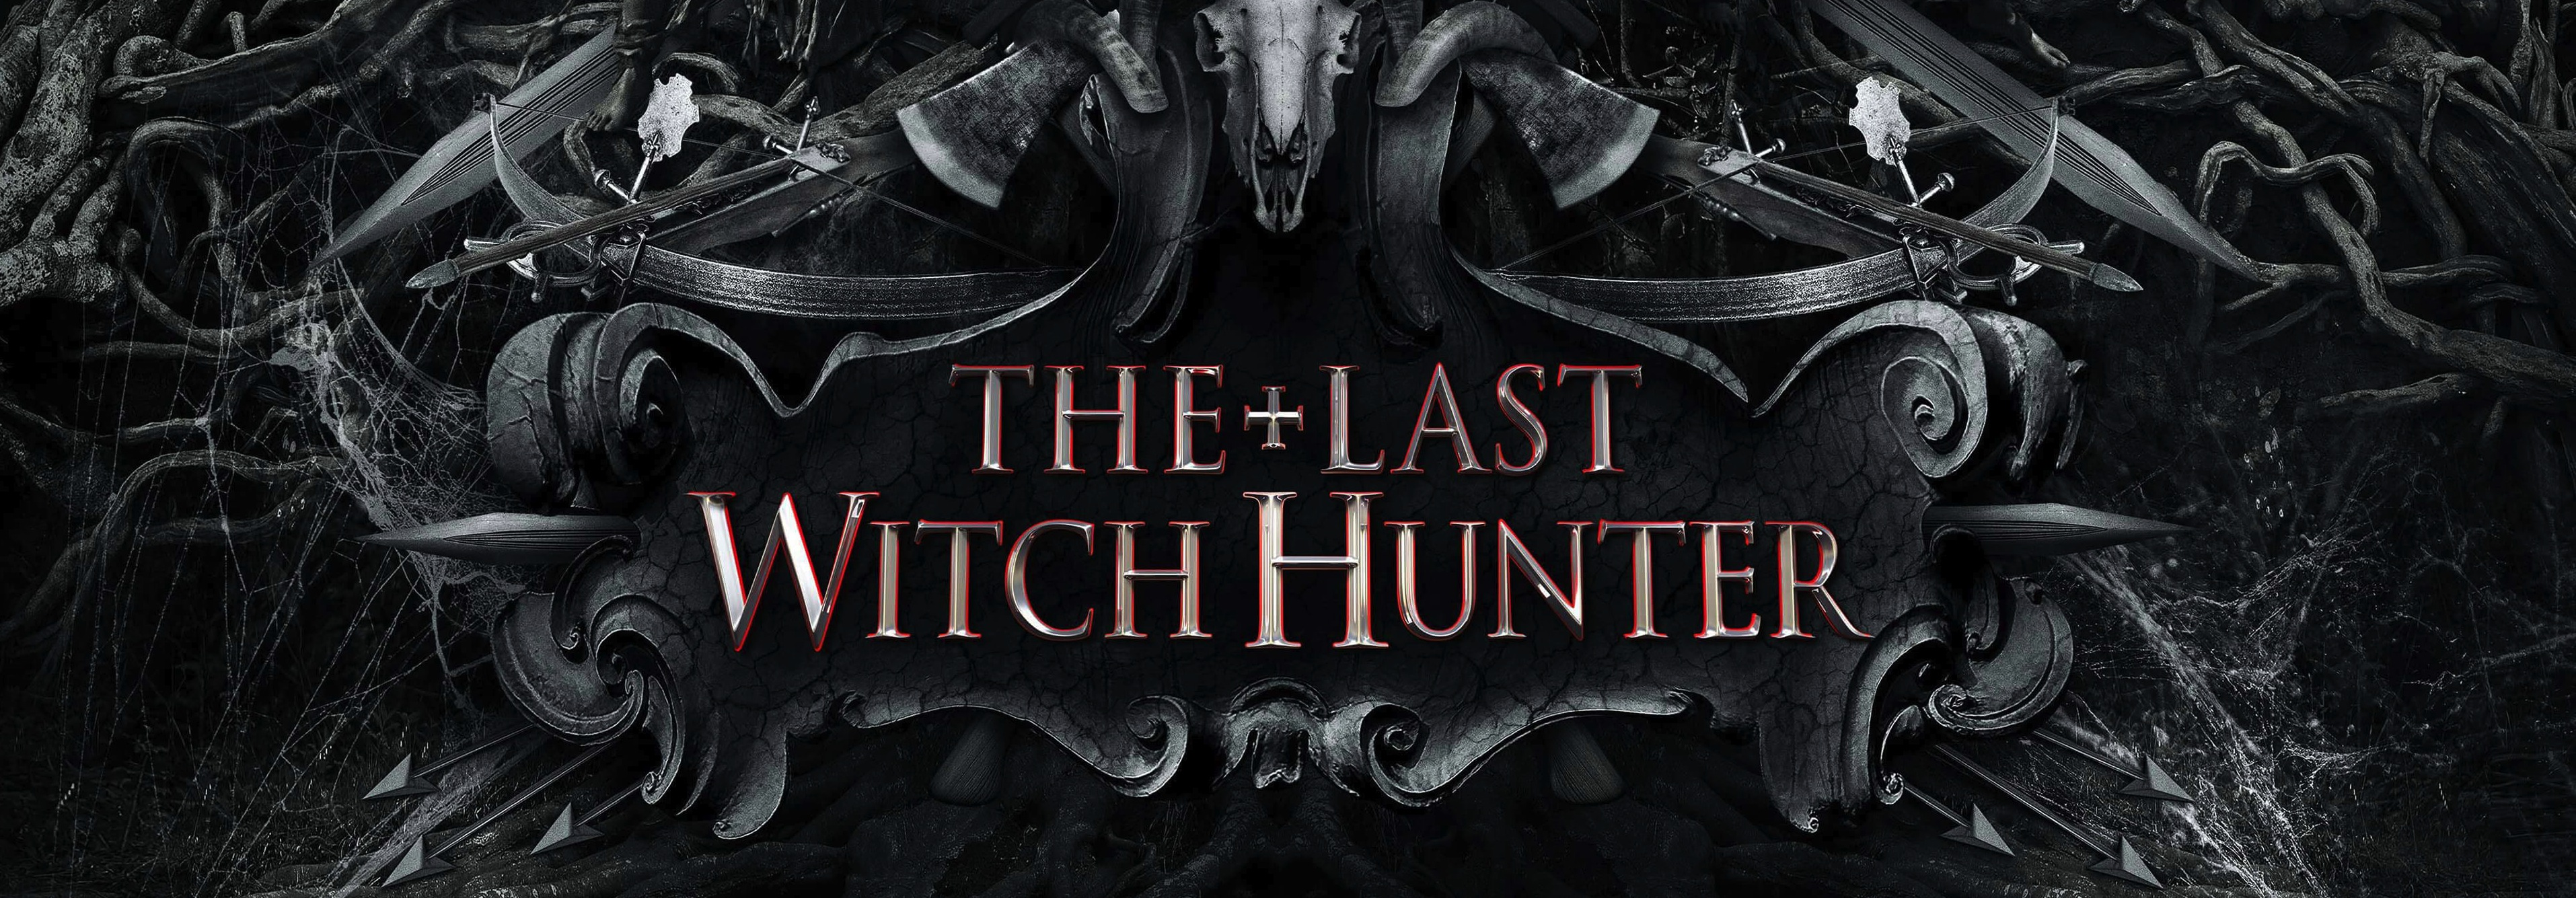 The Last Witch Hunter Movie4k